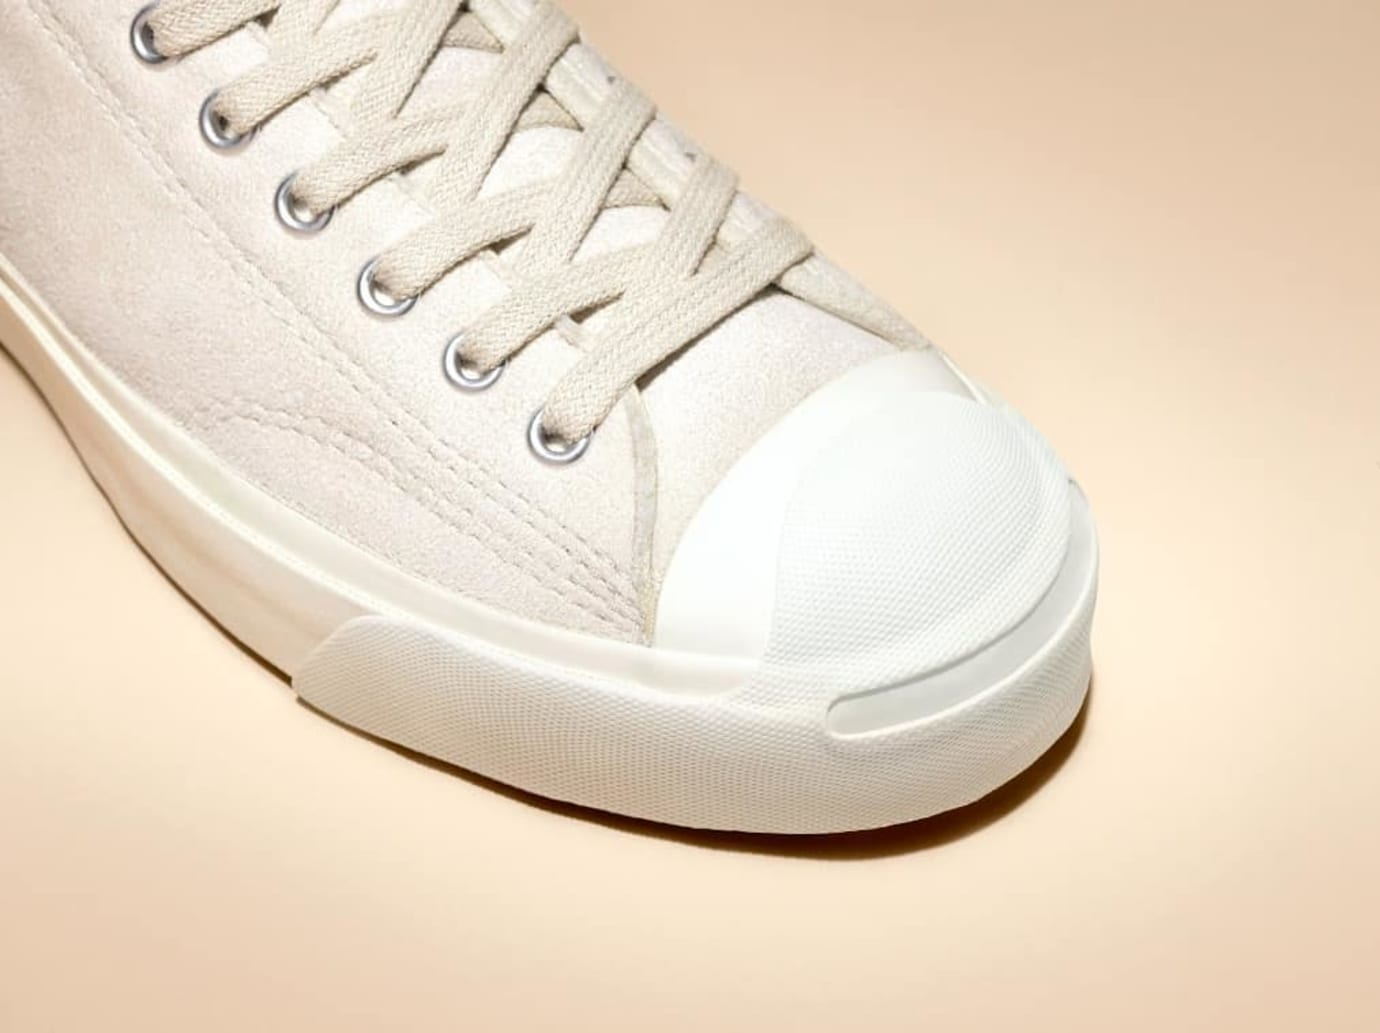 Clot x Converse Jack Purcell 'Ice Cold' (Toe)